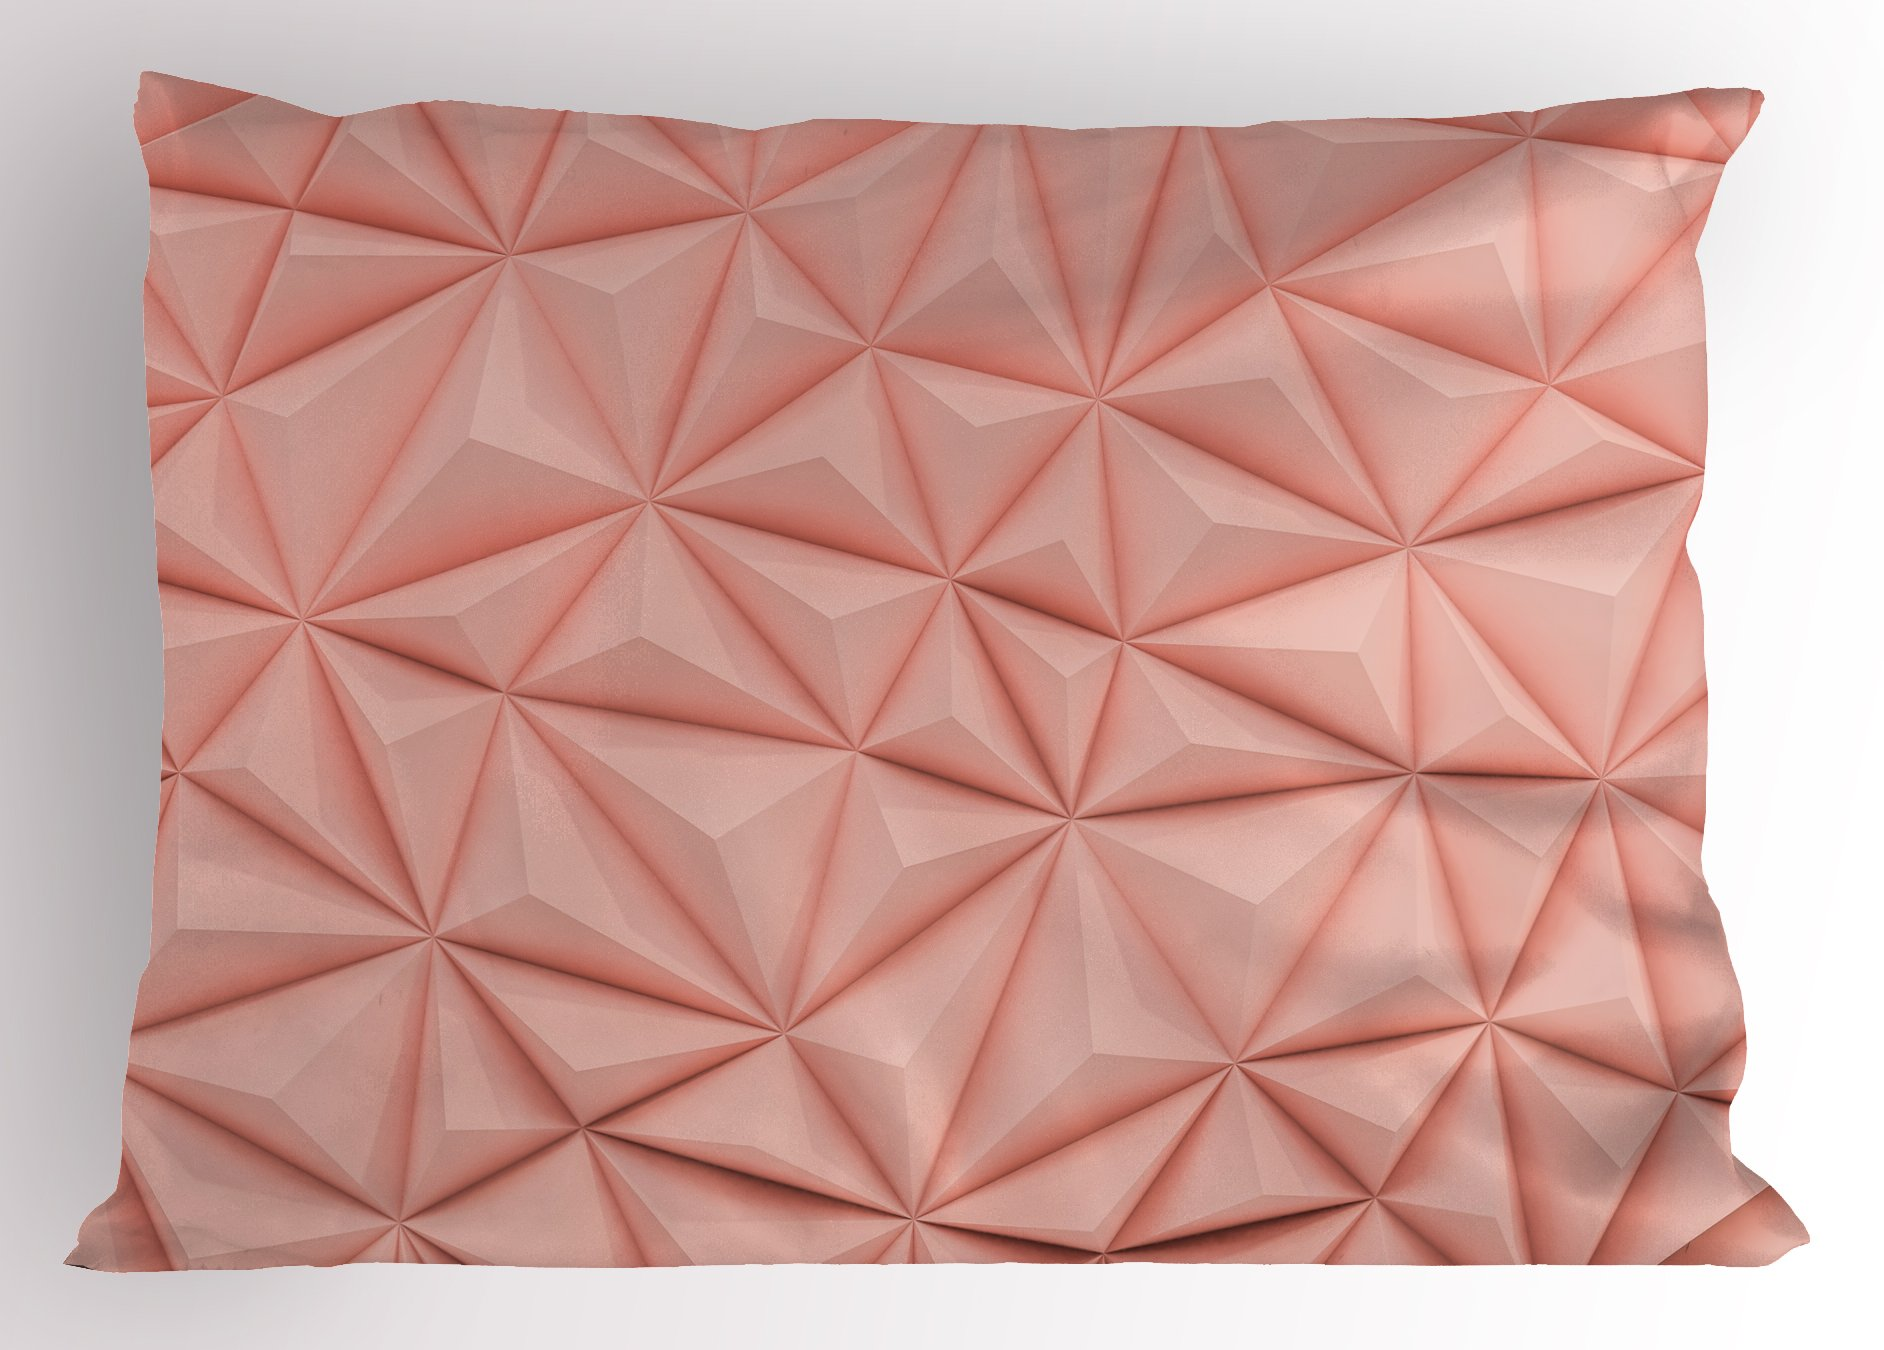 Lunarable Dusty Rose Pillow Sham, Abstract Triangle 3D Style Mosaic with Poly Effect Futuristic Technology Themed, Decorative Standard King Size Printed Pillowcase, 36 X 20 inches, Dusty Rose